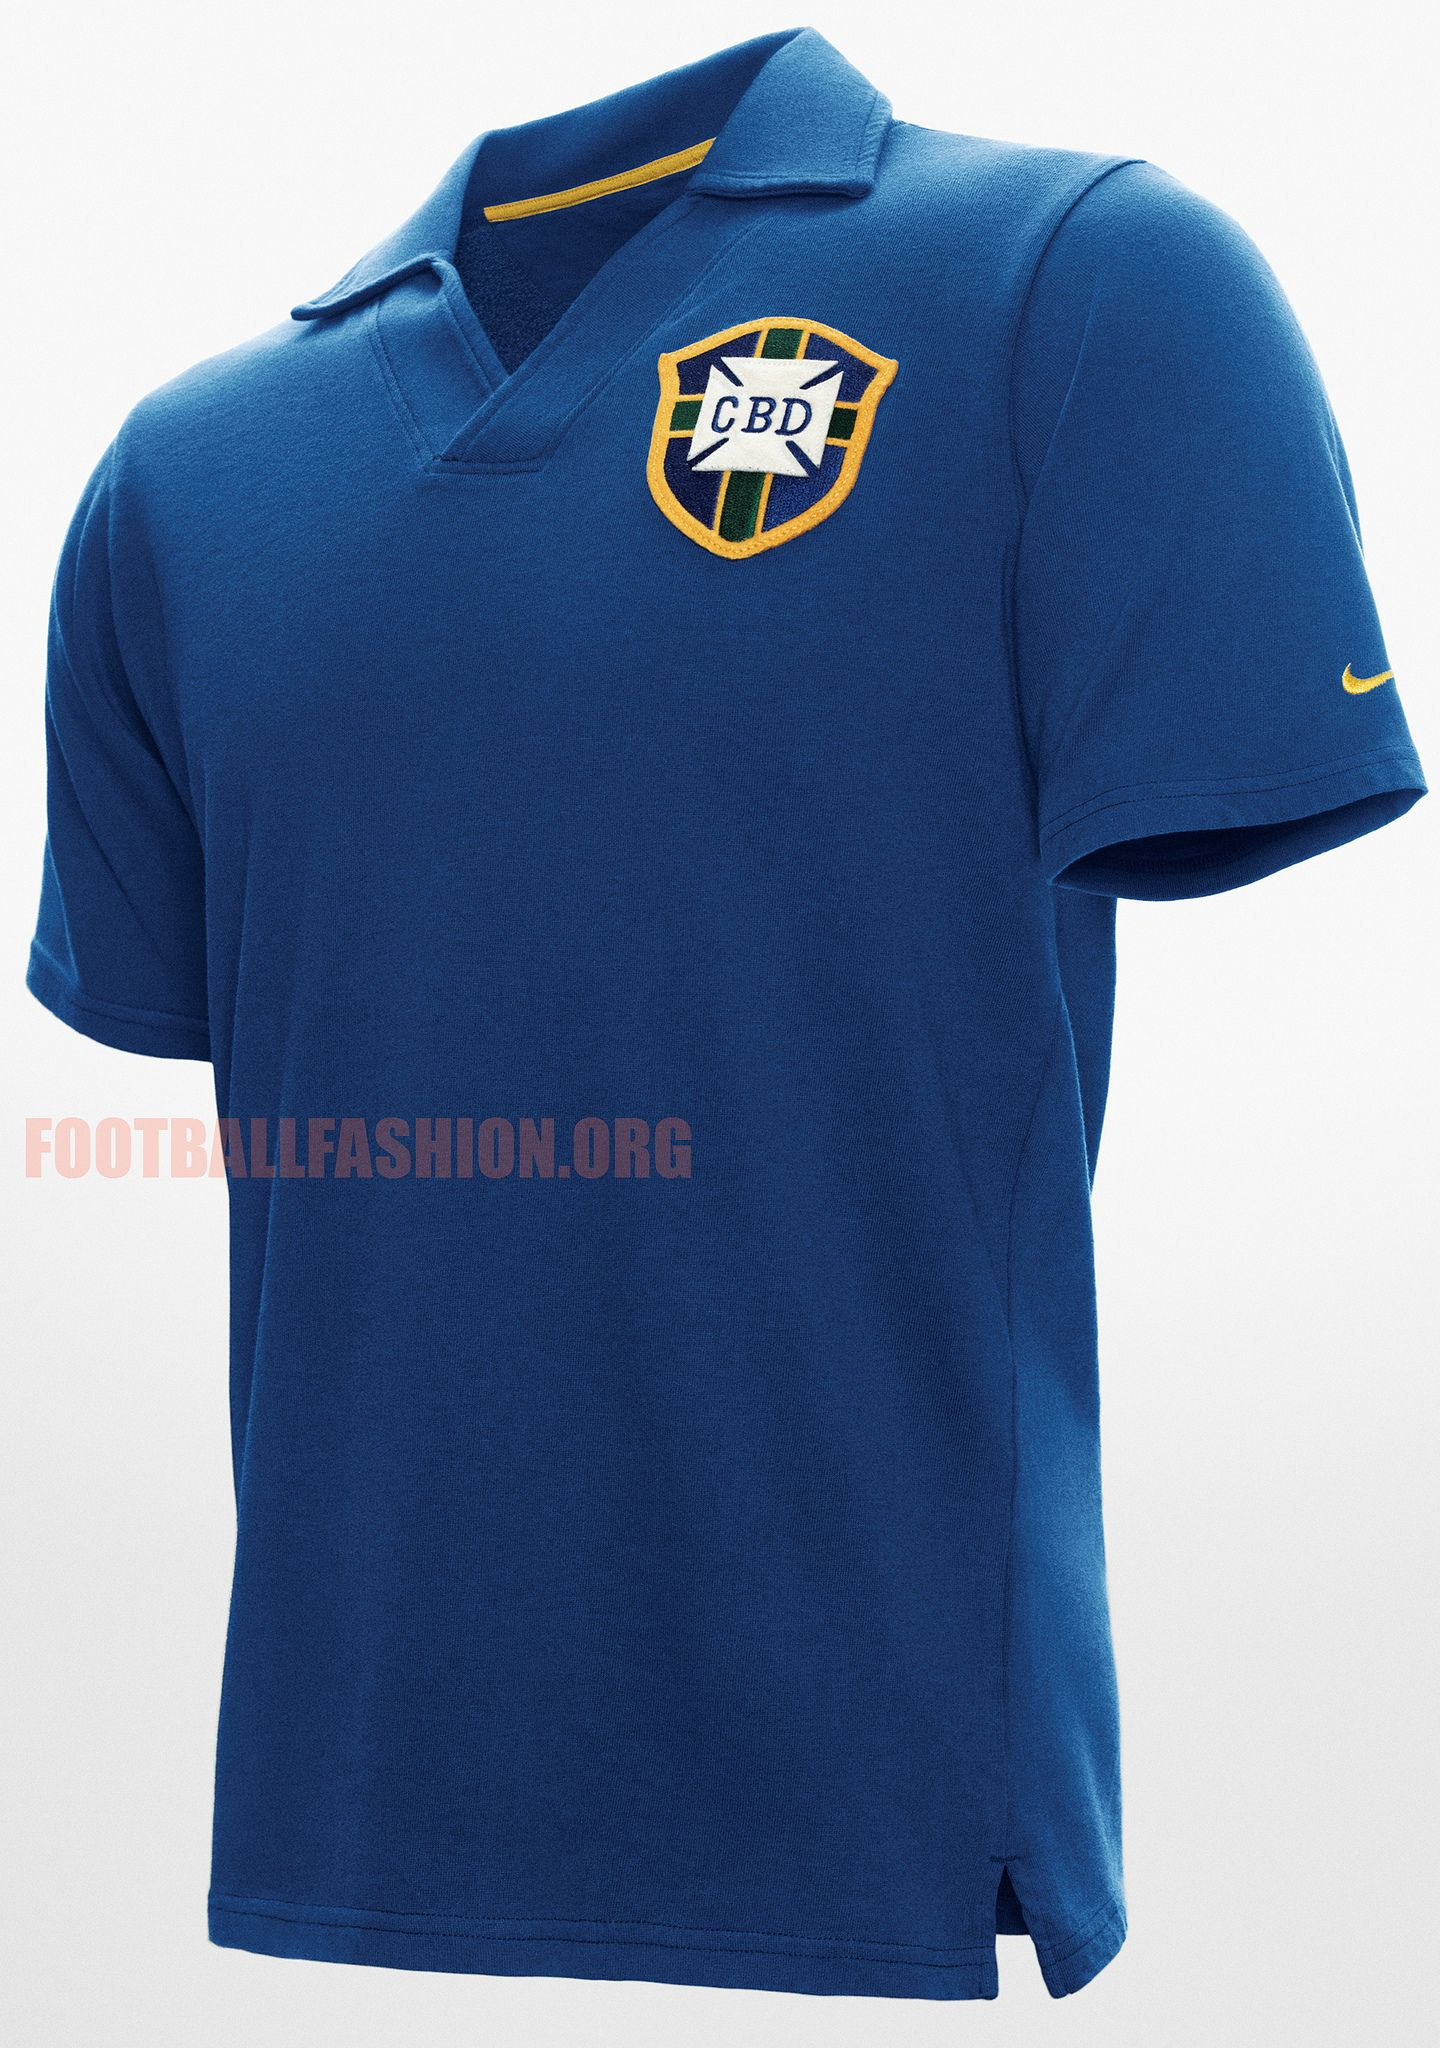 a1092f1e4 Brazil Nike 1958 World Cup Commemorative Jersey